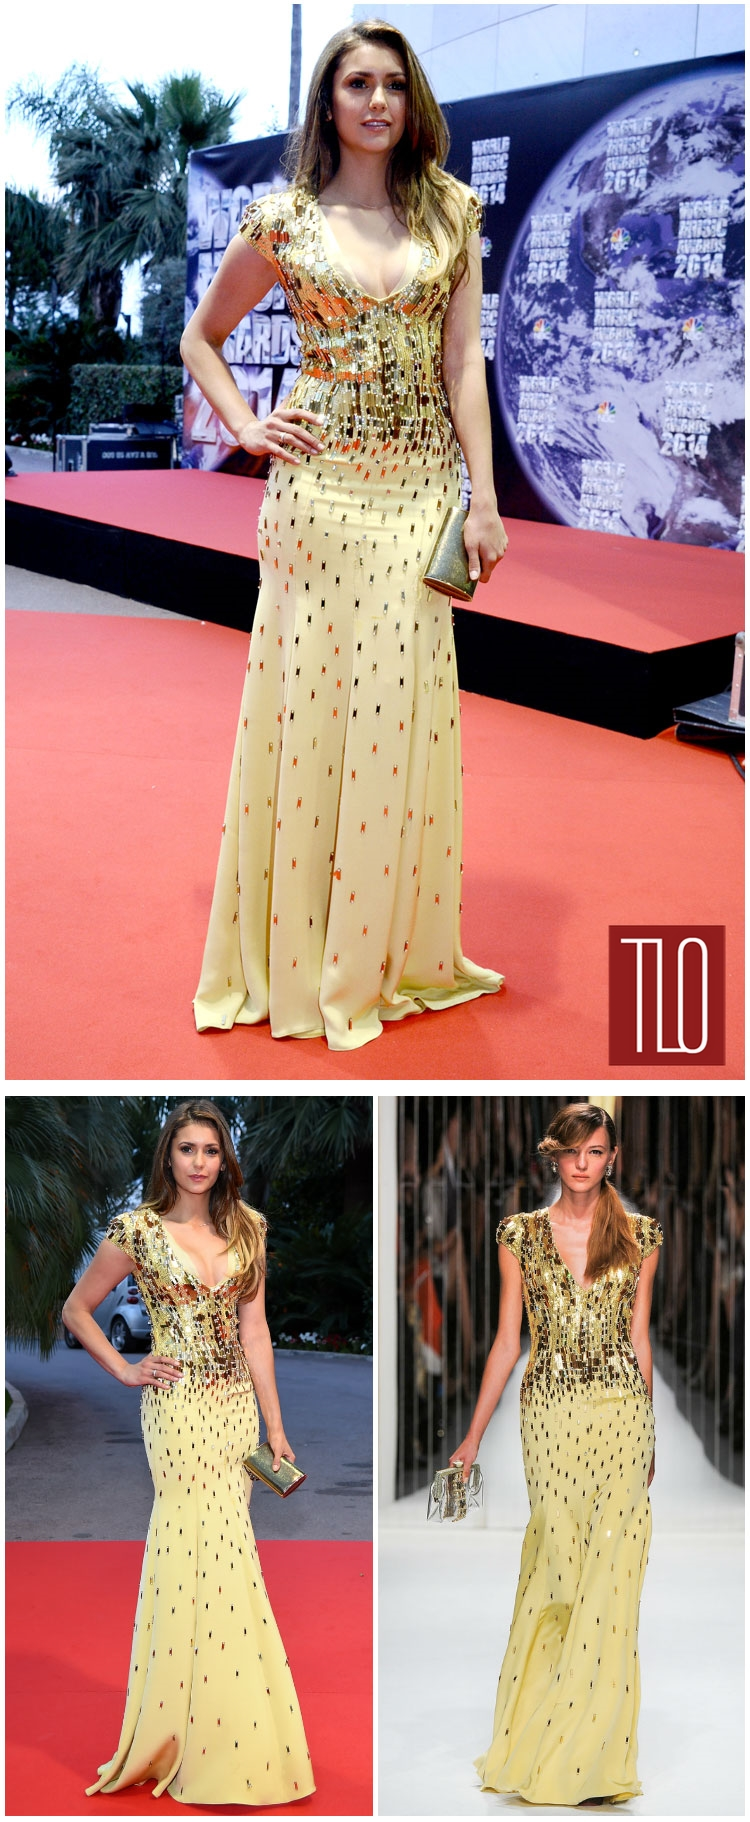 Nina-Dobrev-Jenny-Packham-2014-World-Music-Awards-Tom-Lorenzo-Site-TLO (1)